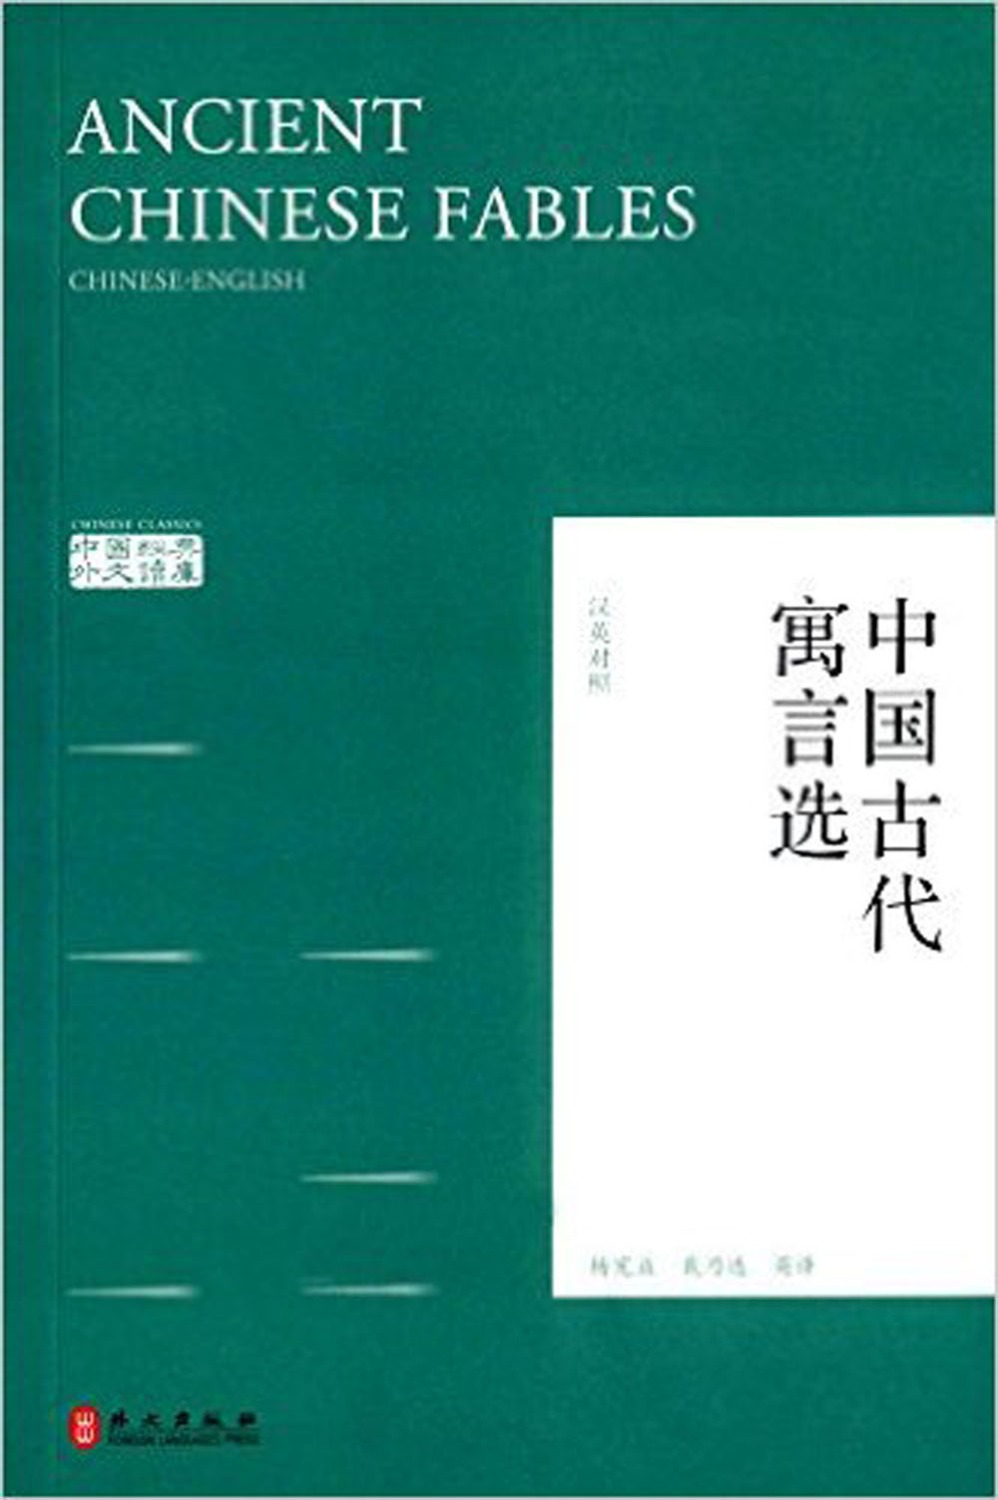 Chinese classics: Ancient Chinese Fables(Chinese-English)- bilingual the fables encyclopedia